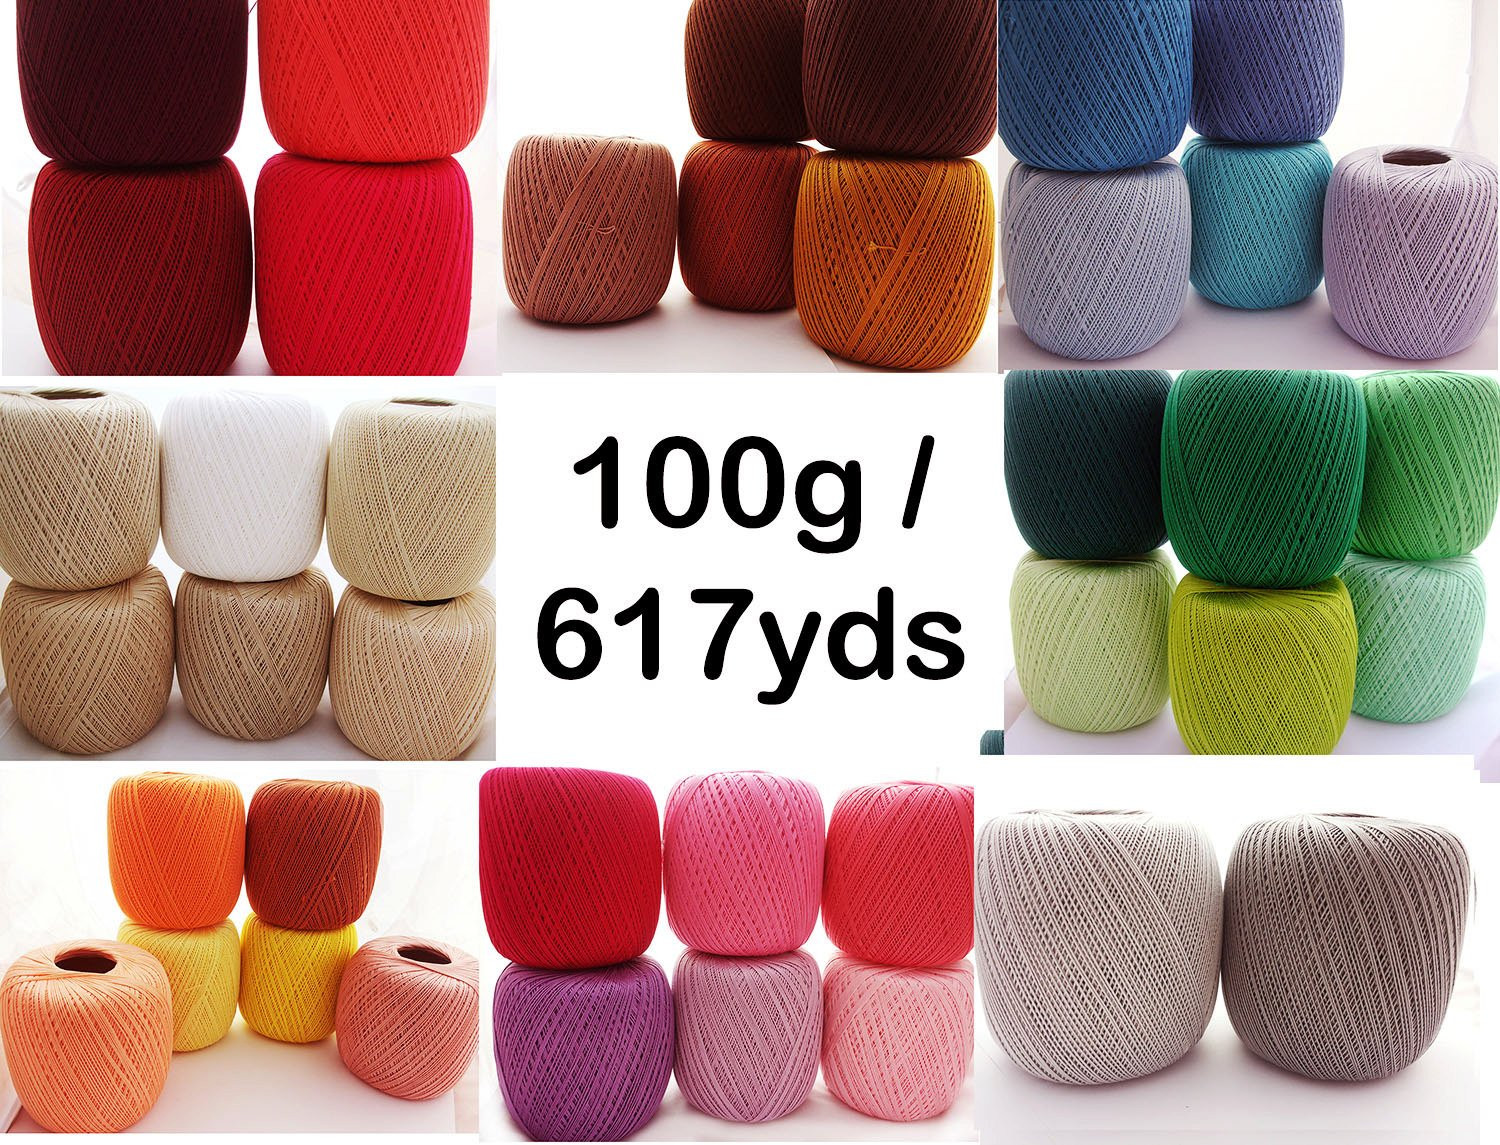 Crochet Threads Size 10 Beautiful Crochet Cotton Thread Size 10 100g X 616yds 3ply by Of Top 42 Ideas Crochet Threads Size 10